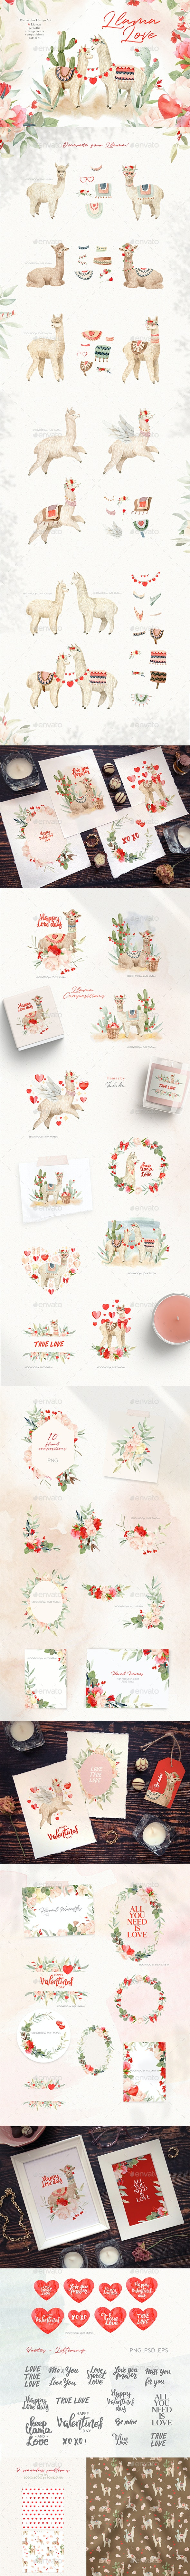 Love Llama - Valentines Day Watercolor Clipart - Animals Illustrations